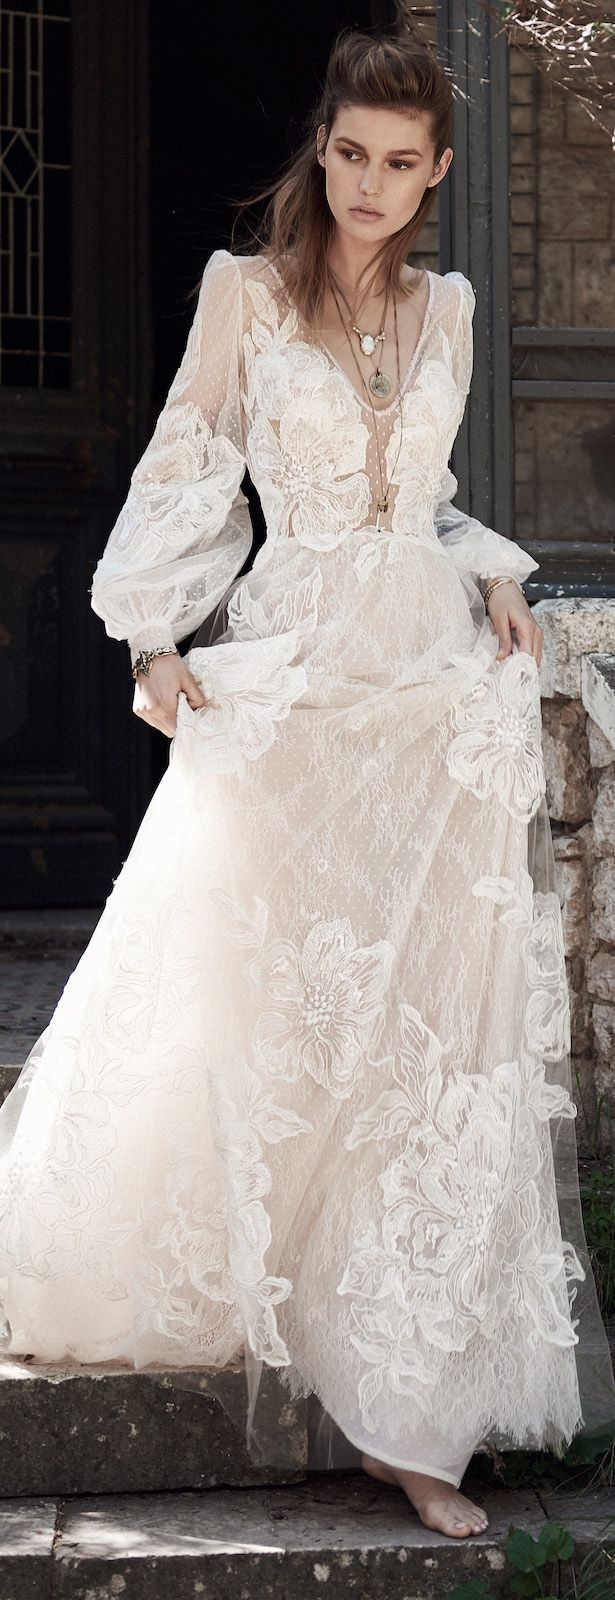 Boho wedding dress with sleeves  Bohemian Wedding Dress by Costarellos Spring  Bridal Collection